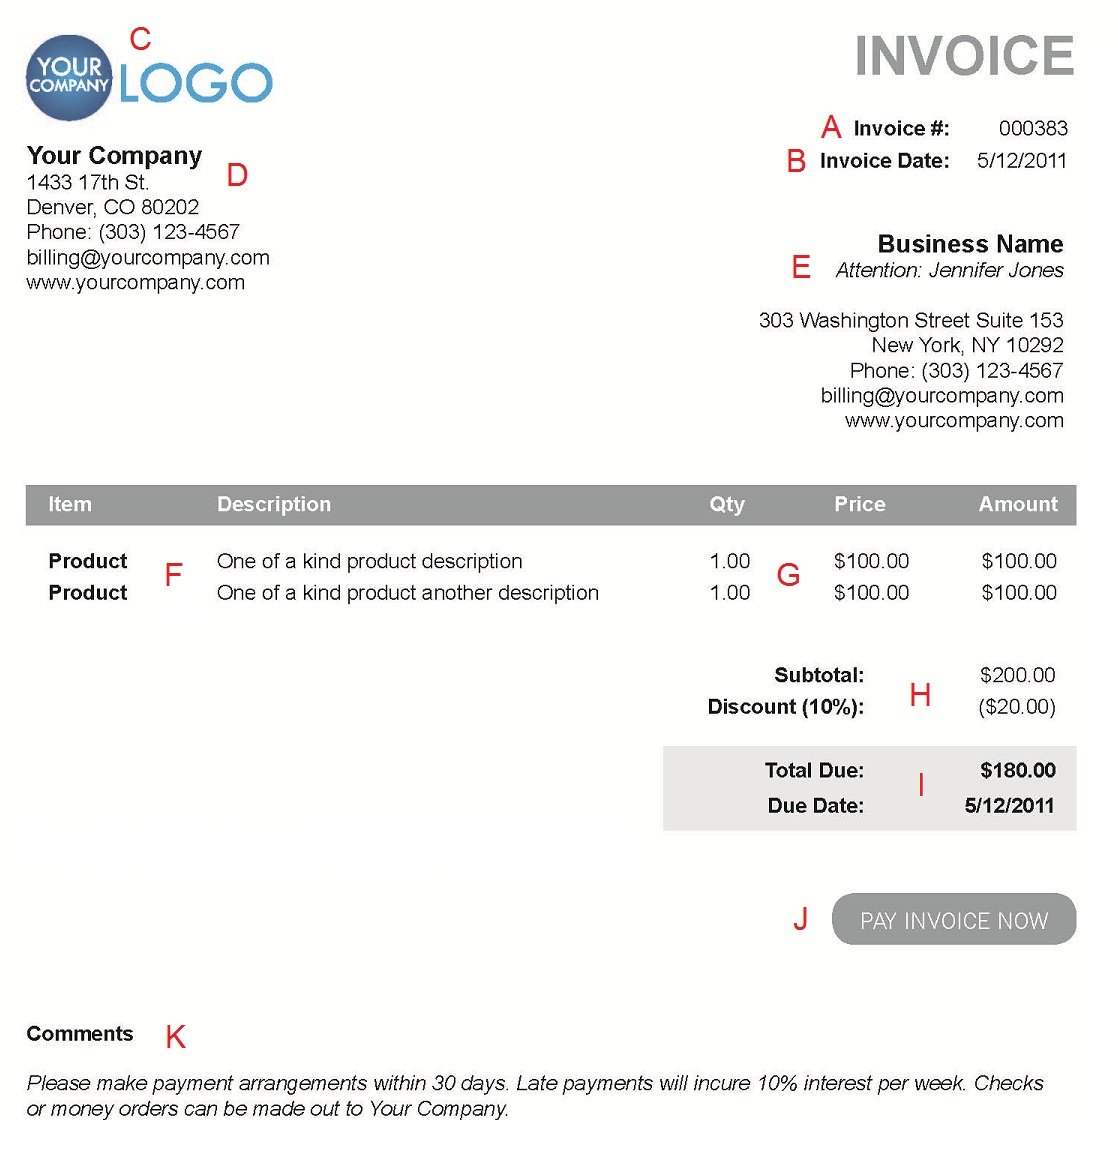 Coachoutletonlineplusus  Gorgeous The  Different Sections Of An Electronic Payment Invoice With Exquisite A  With Captivating Example Of Receipt Of Payment Also Daycare Receipts In Addition Bill Receipt Template And Acknowledgement Of Receipt Of Payment As Well As Return Policy No Receipt Additionally Outlook  Read Receipt From Paysimplecom With Coachoutletonlineplusus  Exquisite The  Different Sections Of An Electronic Payment Invoice With Captivating A  And Gorgeous Example Of Receipt Of Payment Also Daycare Receipts In Addition Bill Receipt Template From Paysimplecom